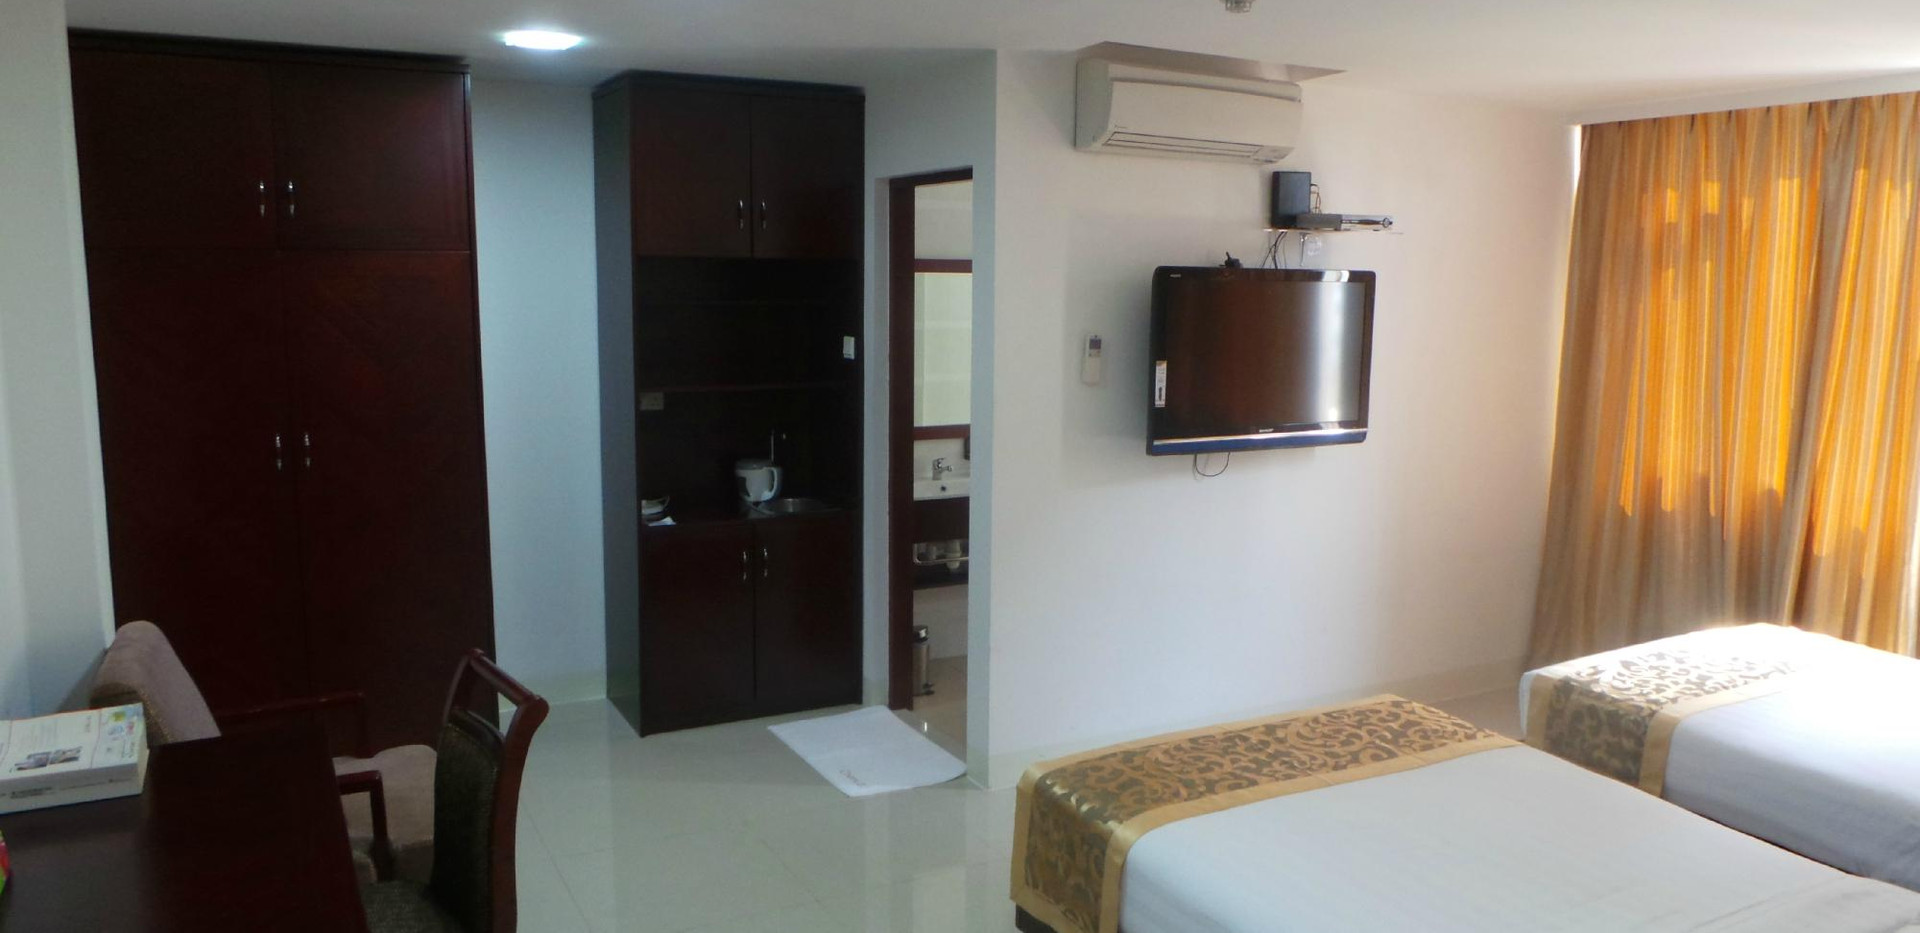 expats room rental affordable